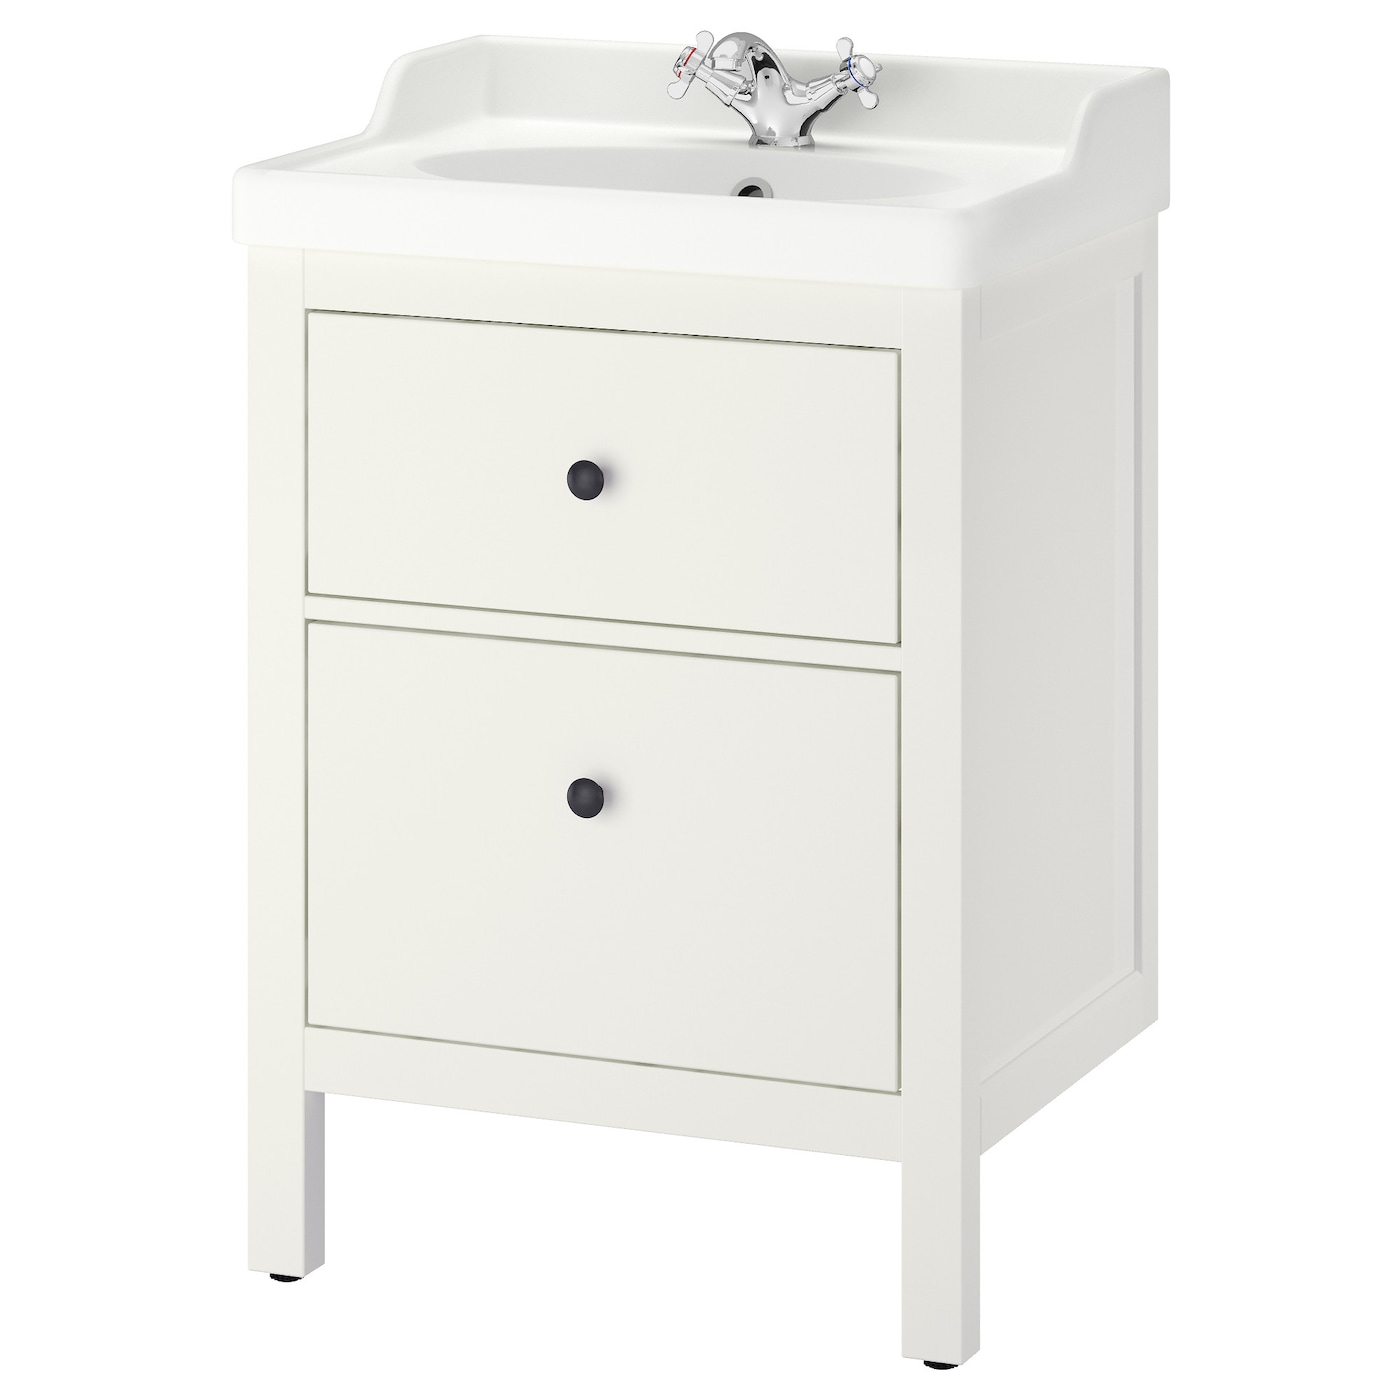 HEMNES  R u00c4TTVIKEN Wash stand with 2 drawers White 60x49x89 cm   IKEA